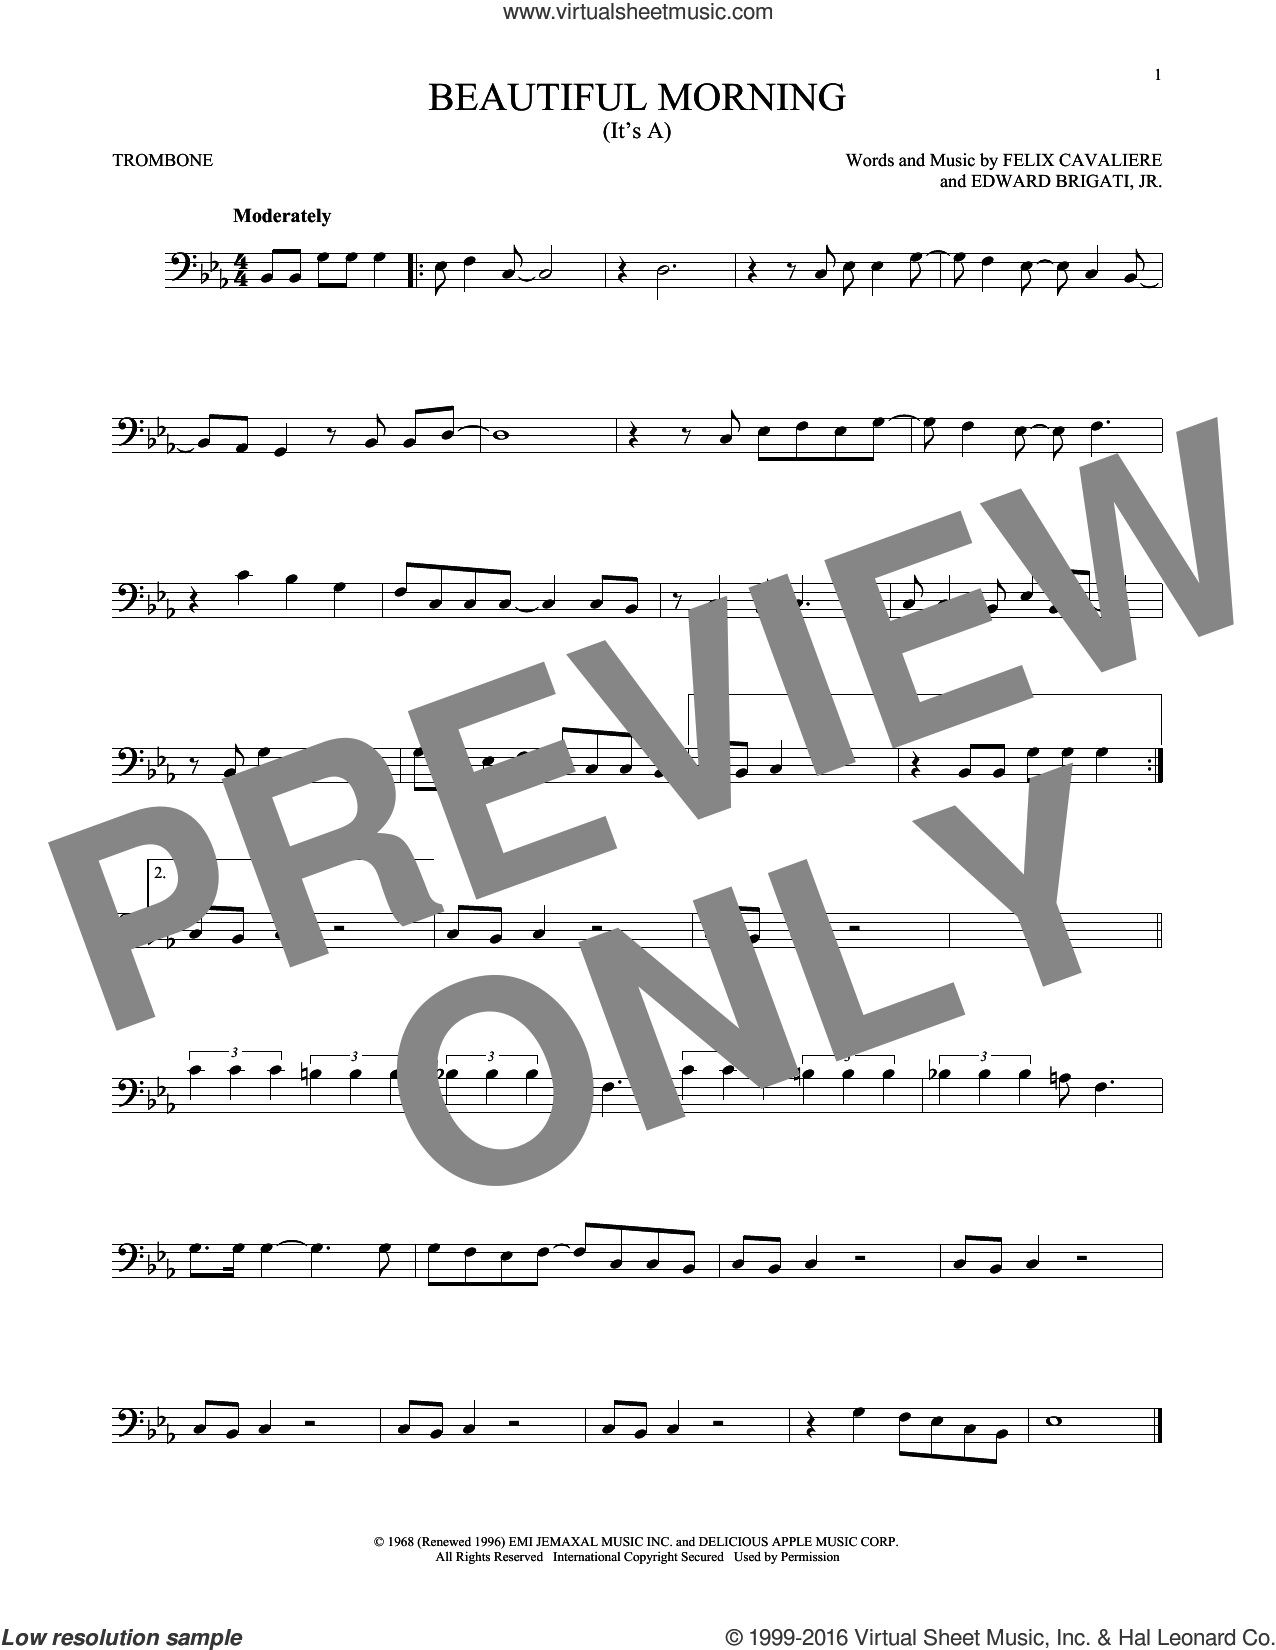 (It's A) Beautiful Morning sheet music for trombone solo by Felix Cavaliere and The Rascals. Score Image Preview.